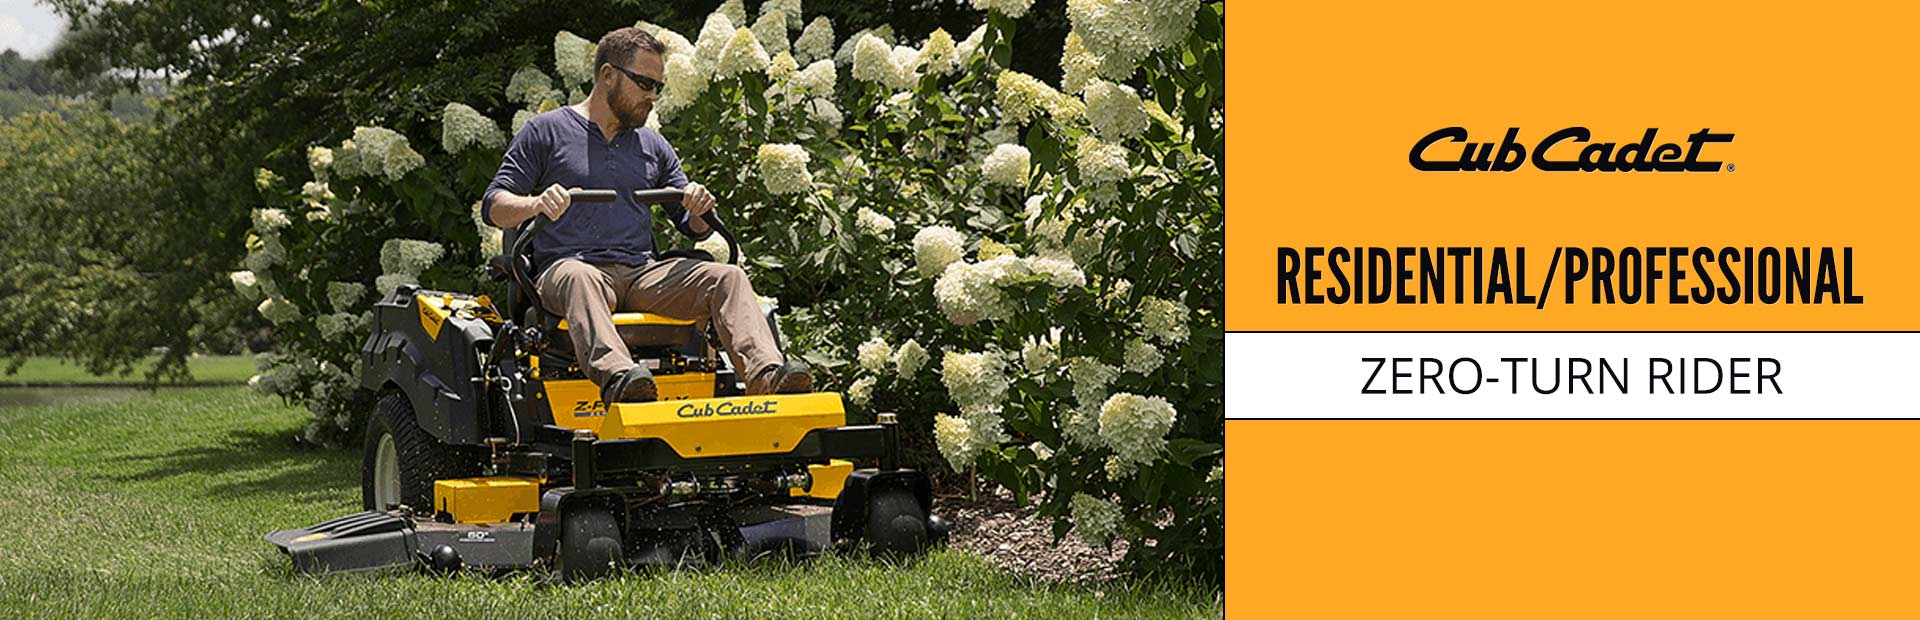 Cub Cadet: Residential/Professional Zero-Turn Rider Promotion